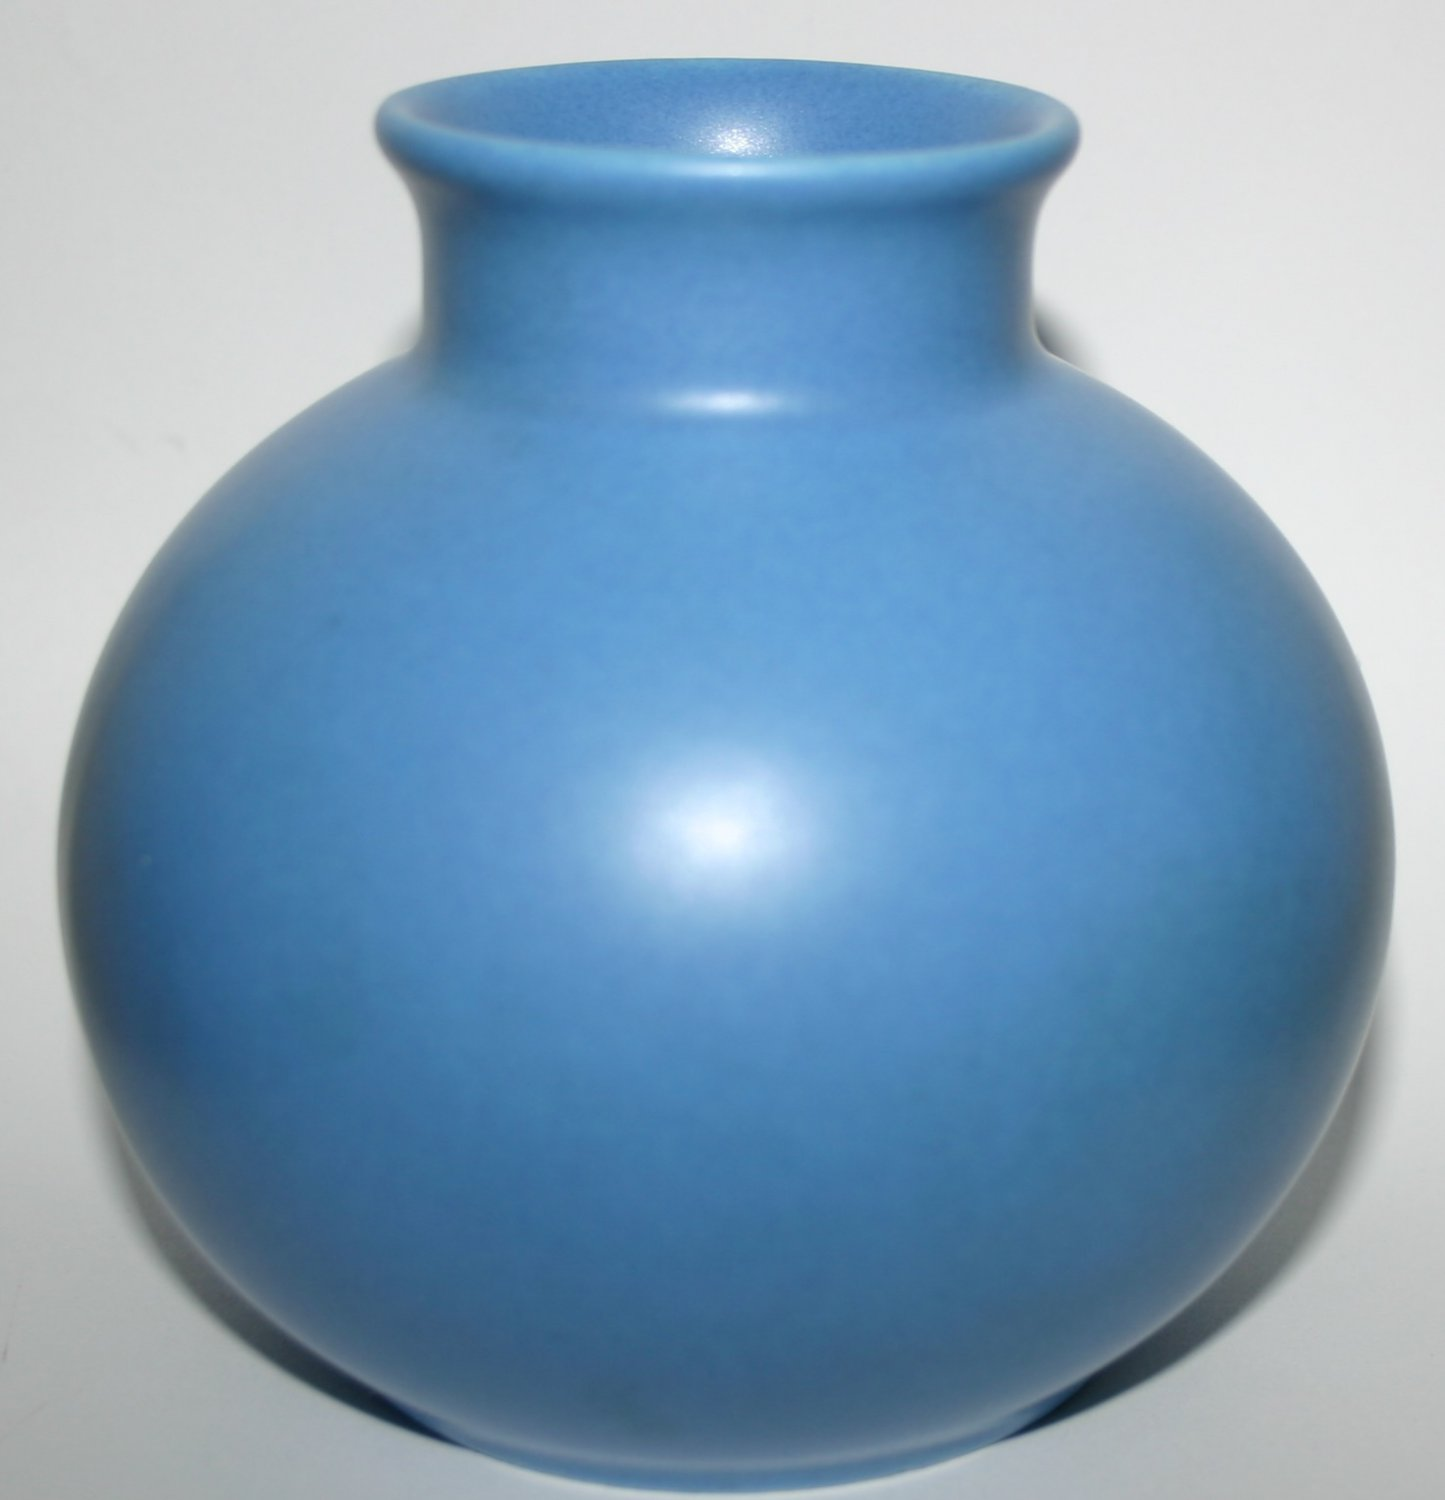 Classical Round Blue Bowl Flower Vase By Poole Pottery